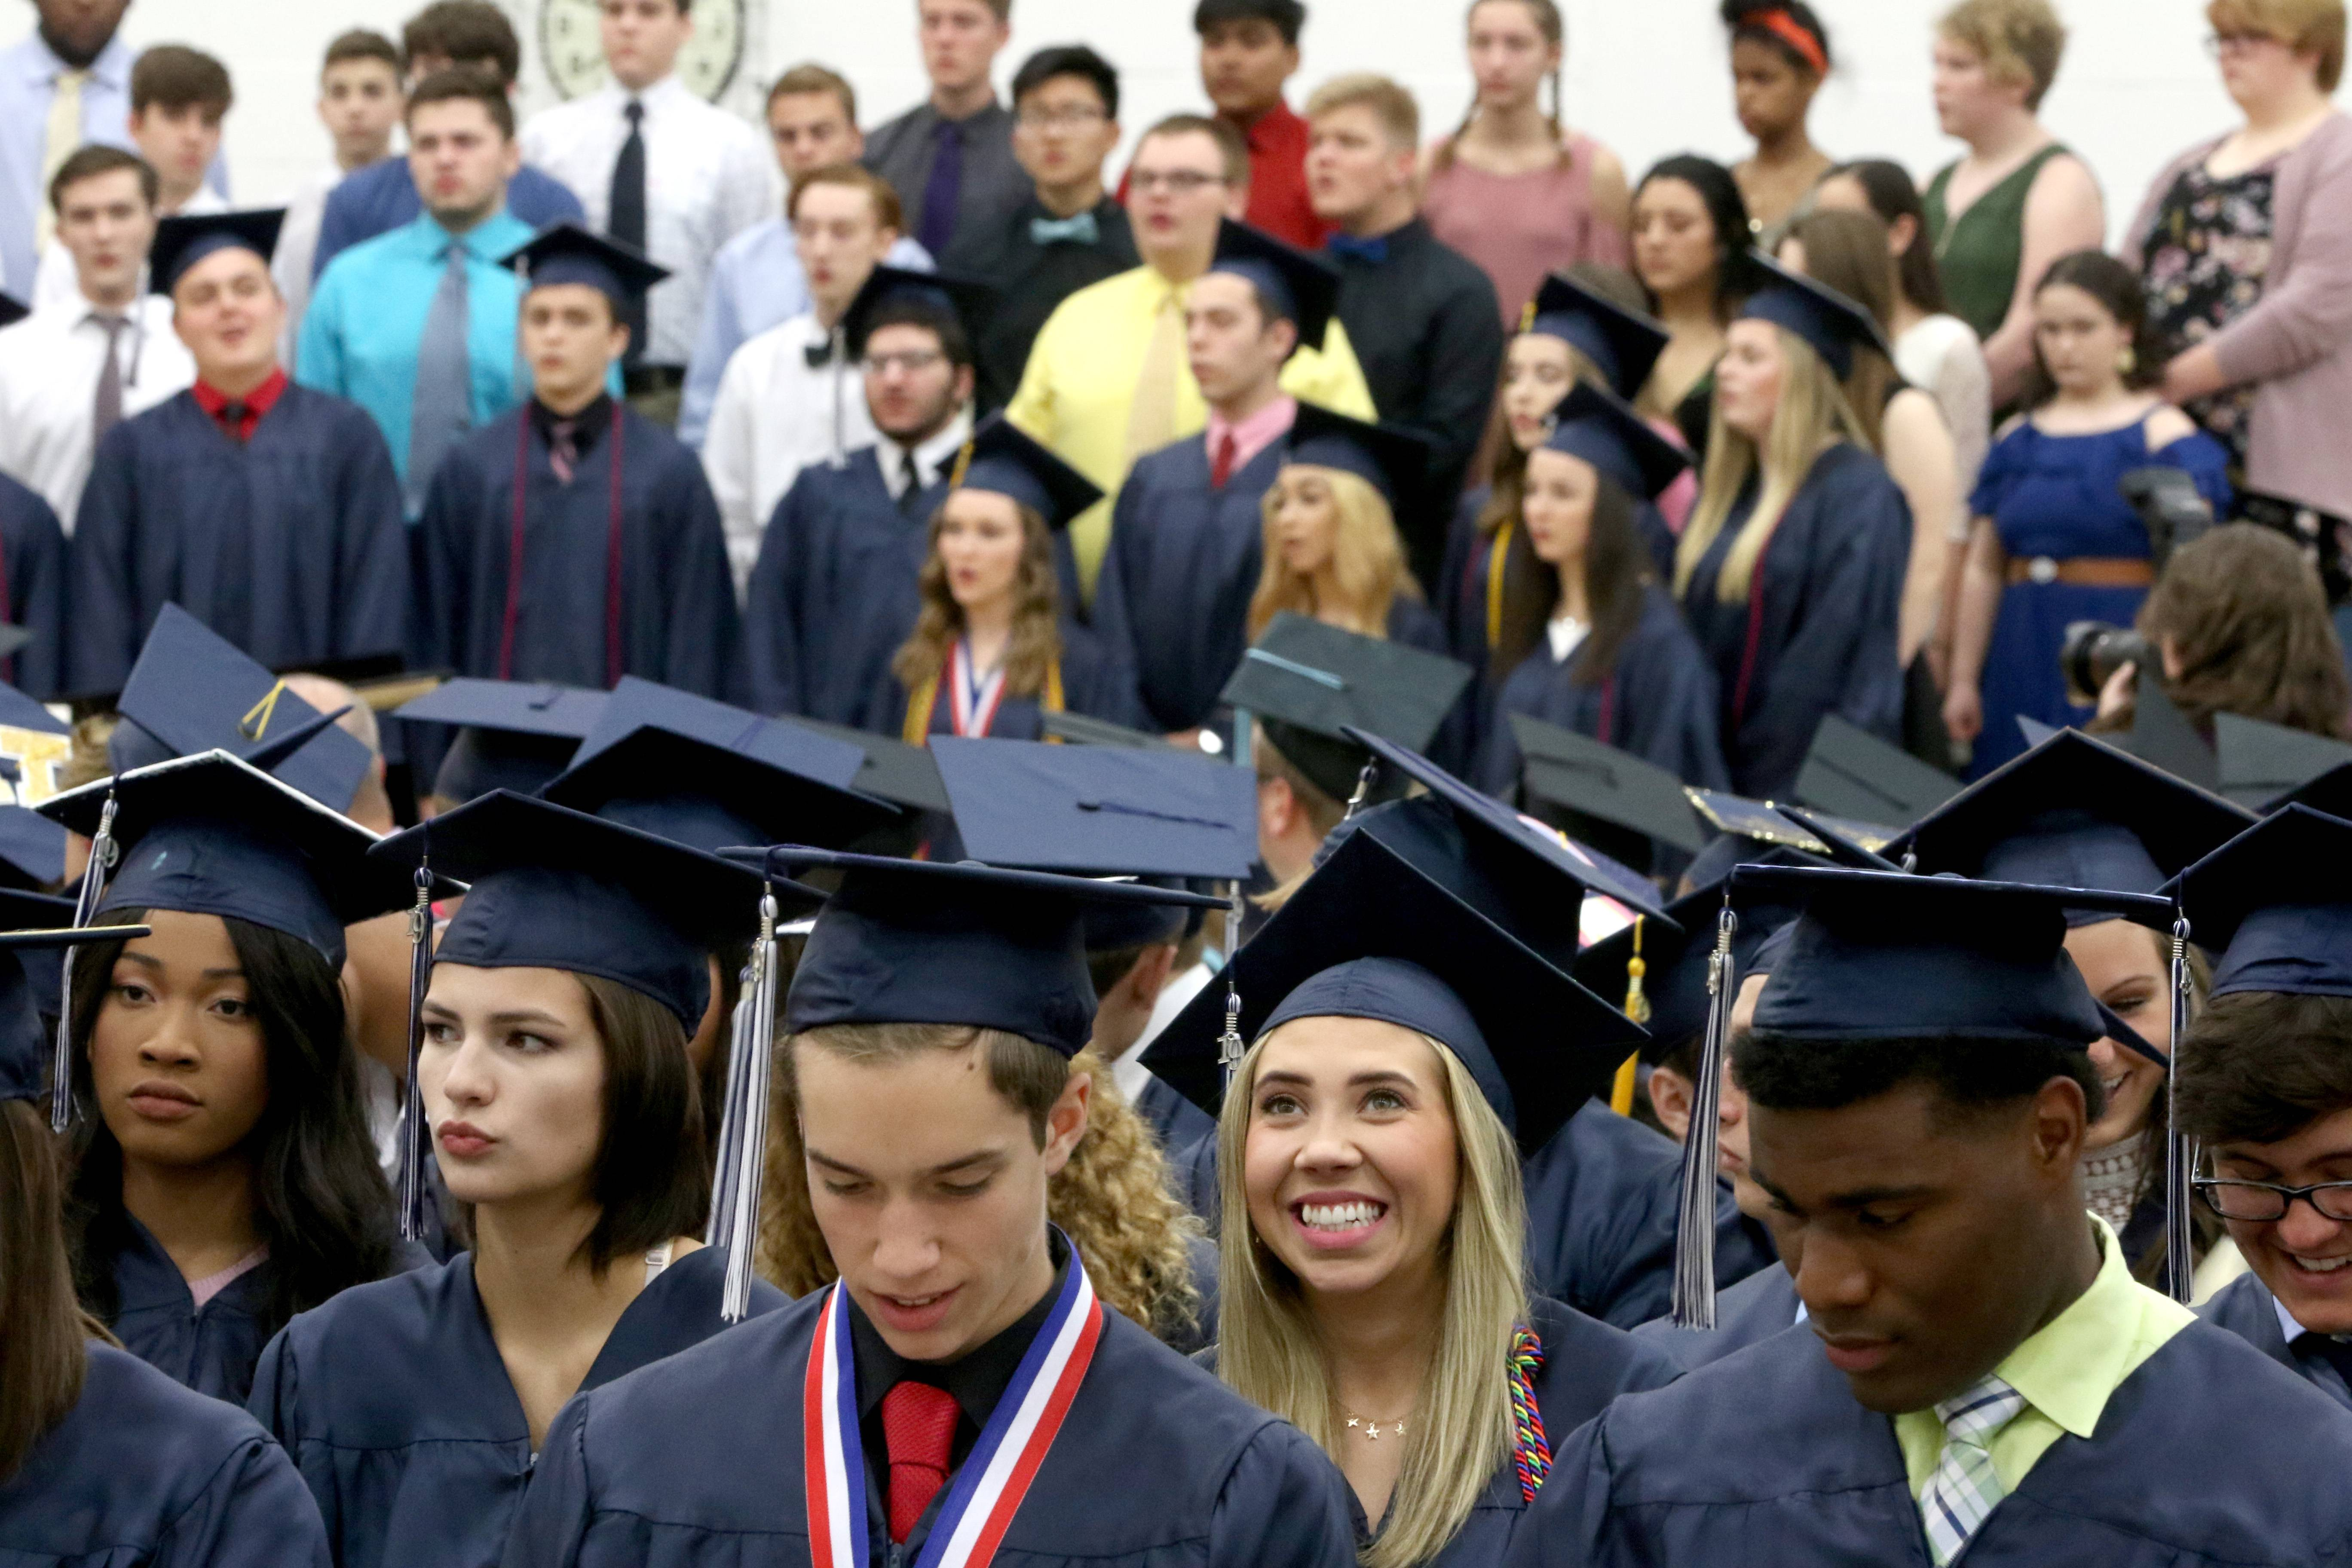 Members of the Class of 2019 listen to the choir perform during Lisle High School graduation on Friday, May 24, 2019 at the school.